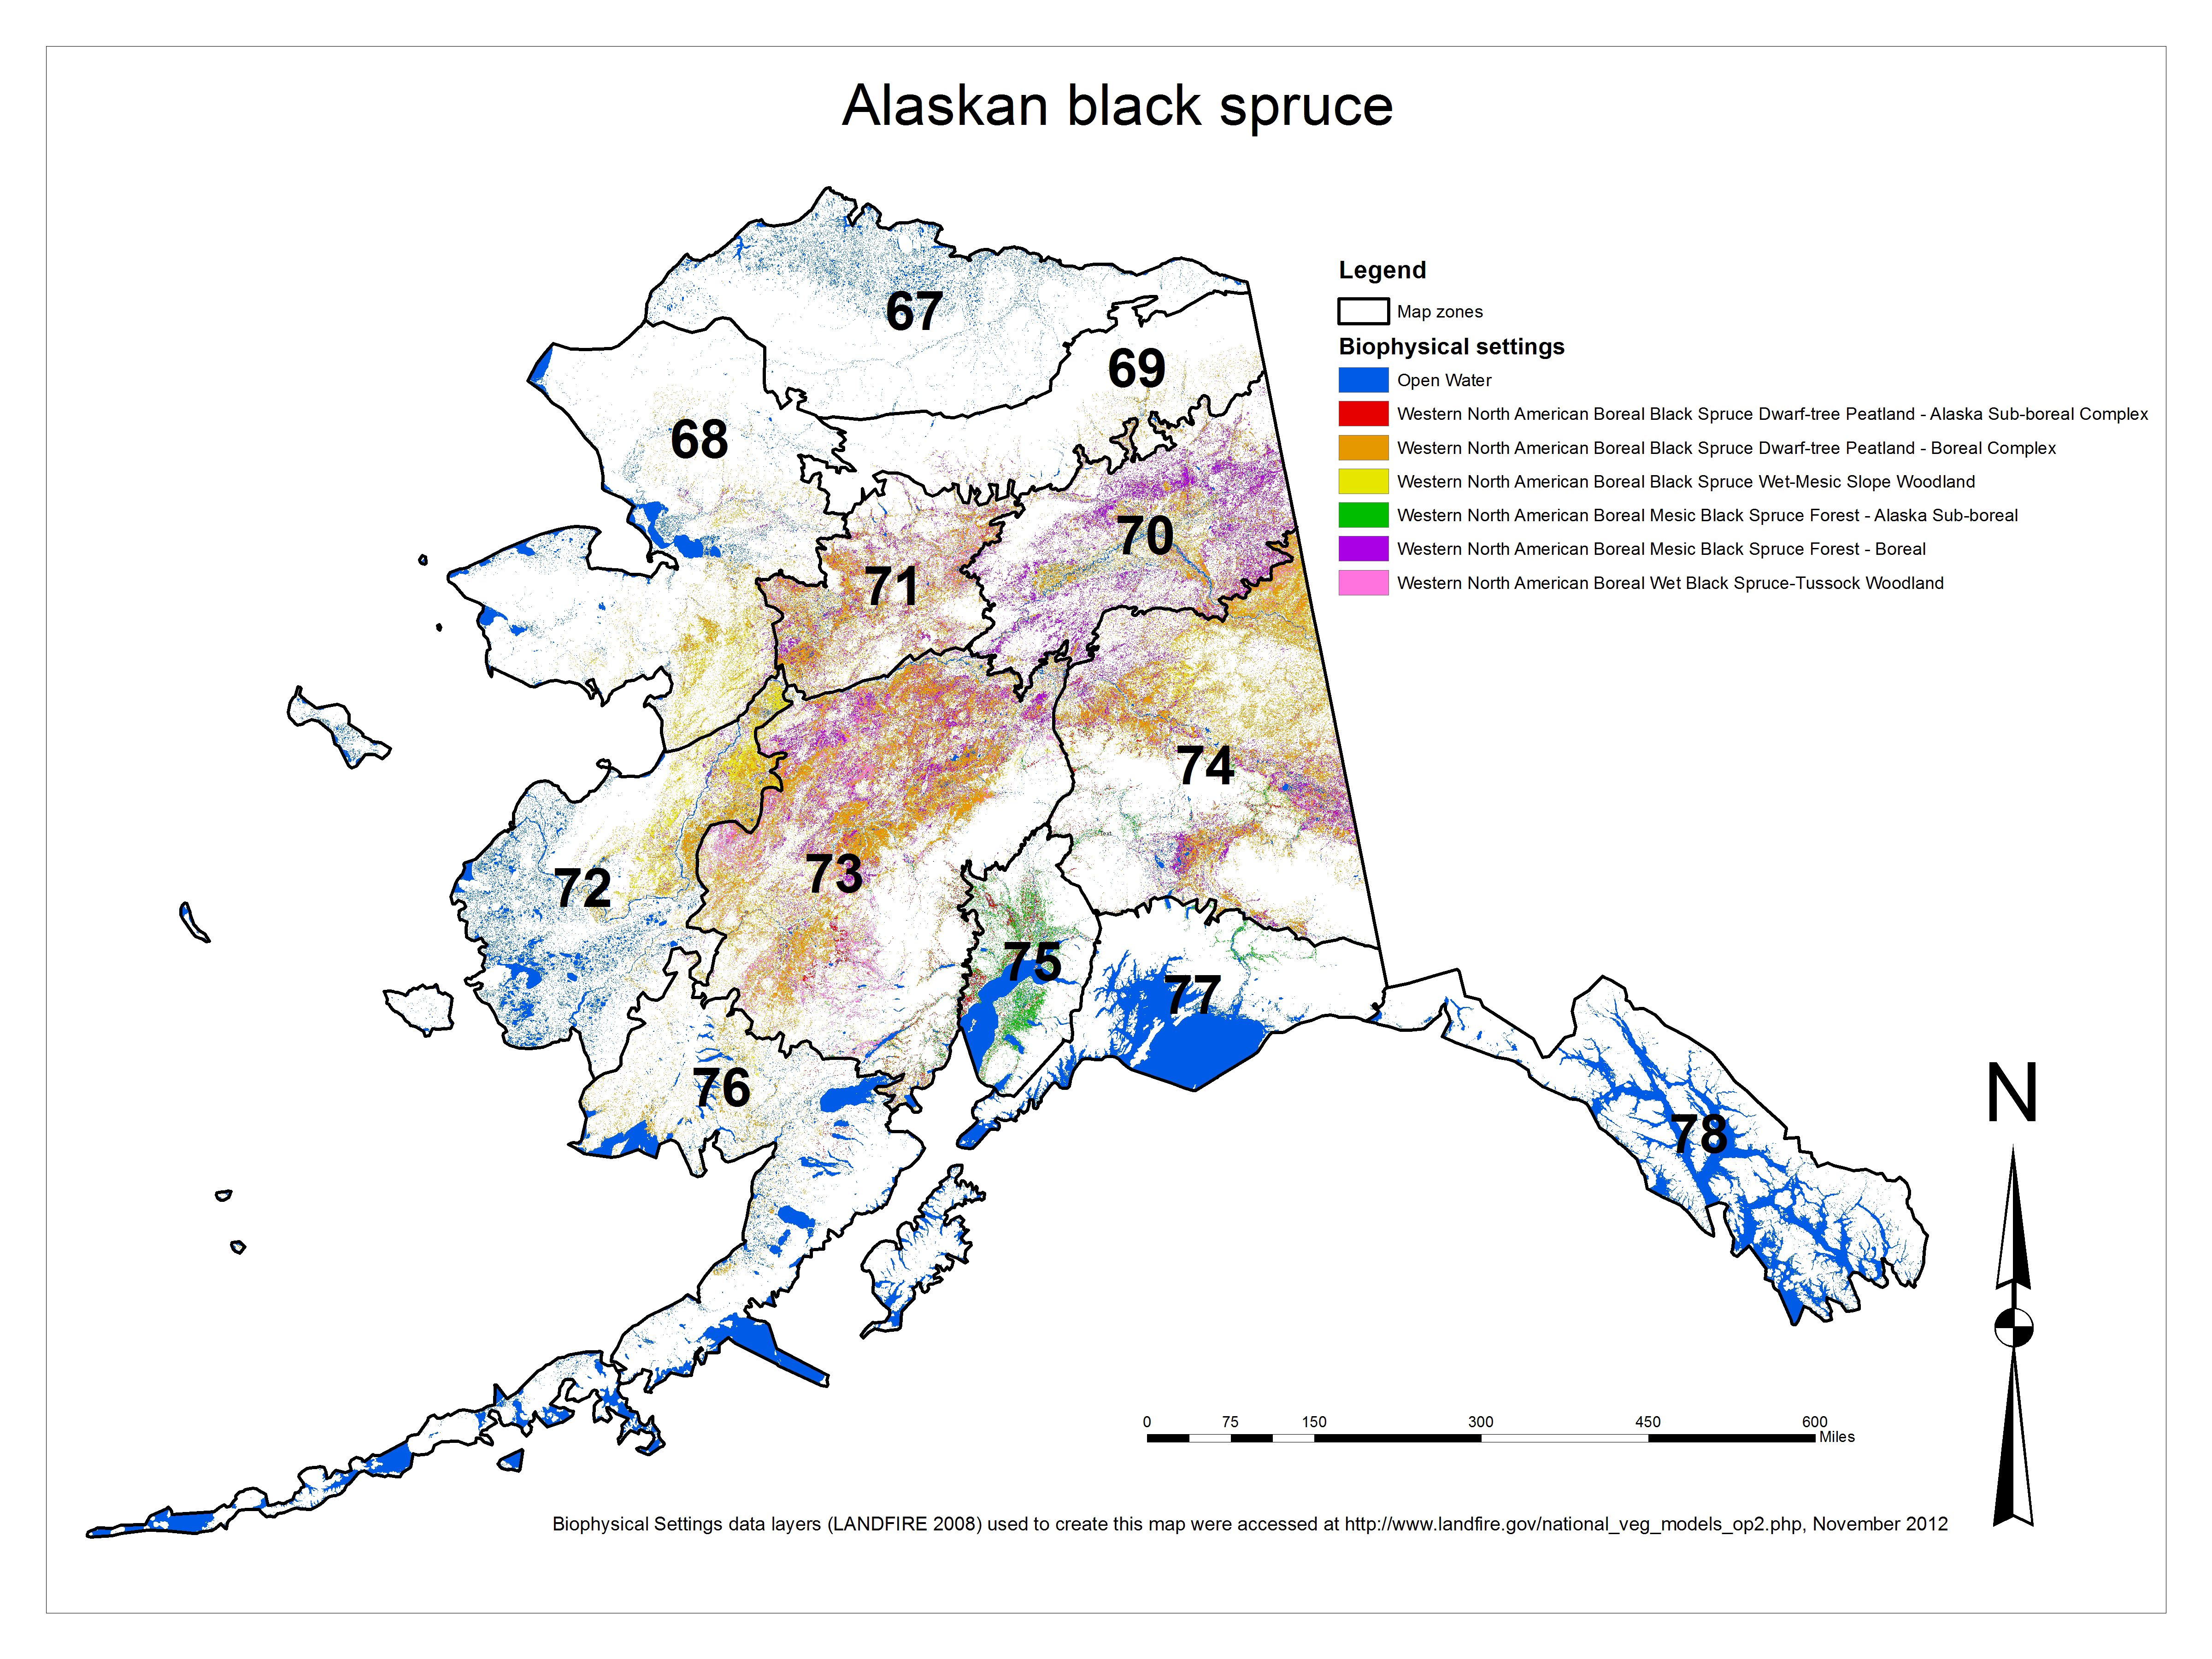 Alaskan Black Spruce Process Flow Diagram National Cranberry Cooperative Figure 1 Land Cover Distribution Of Communities Based On The Landfire Biophysical Settings Bps Data Layer 75